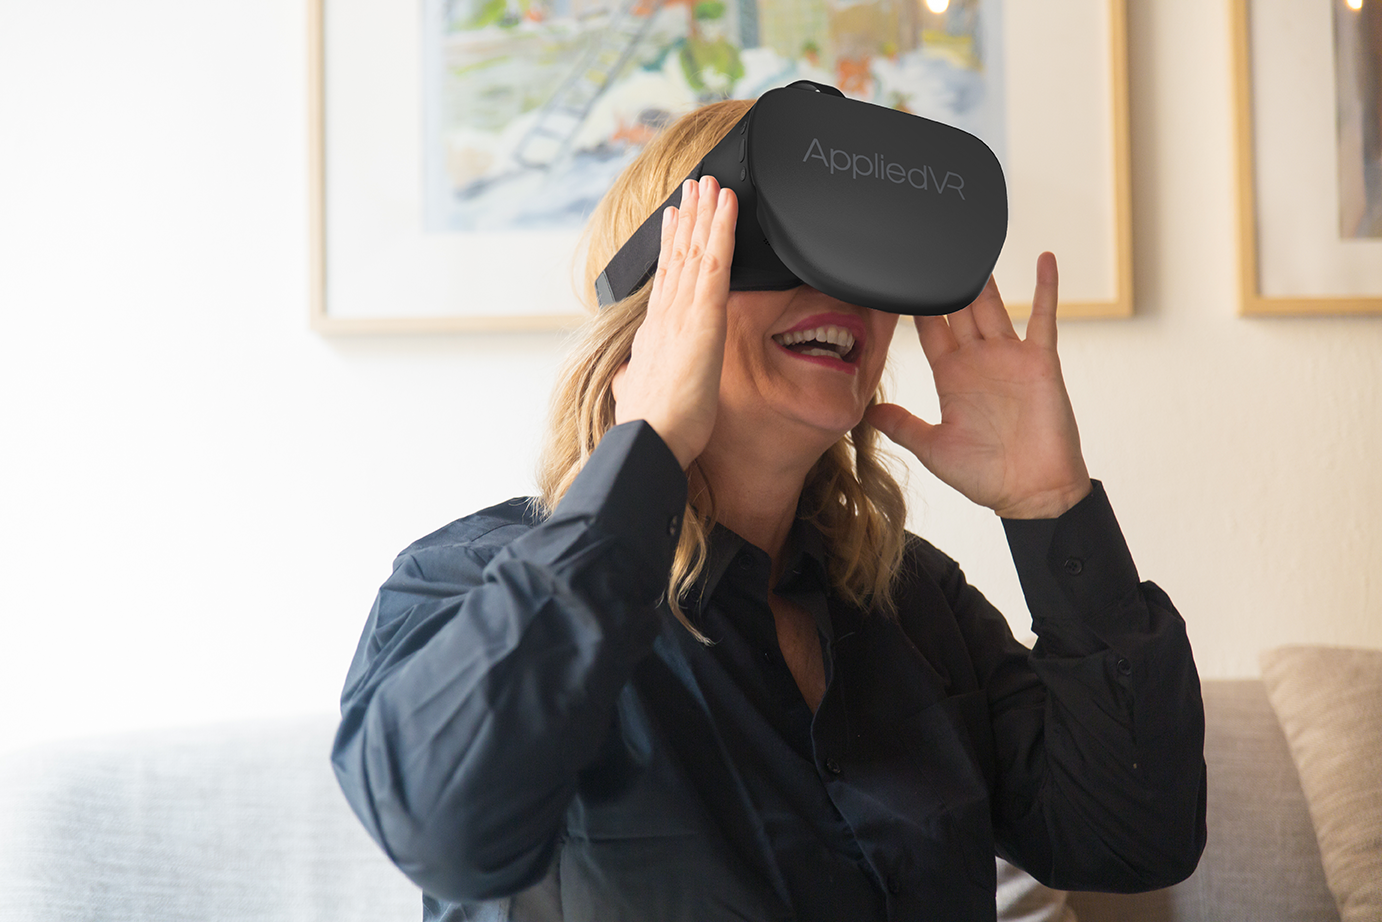 AppliedVR raises $29M as it seeks FDA clearance of VR system for pain treatment